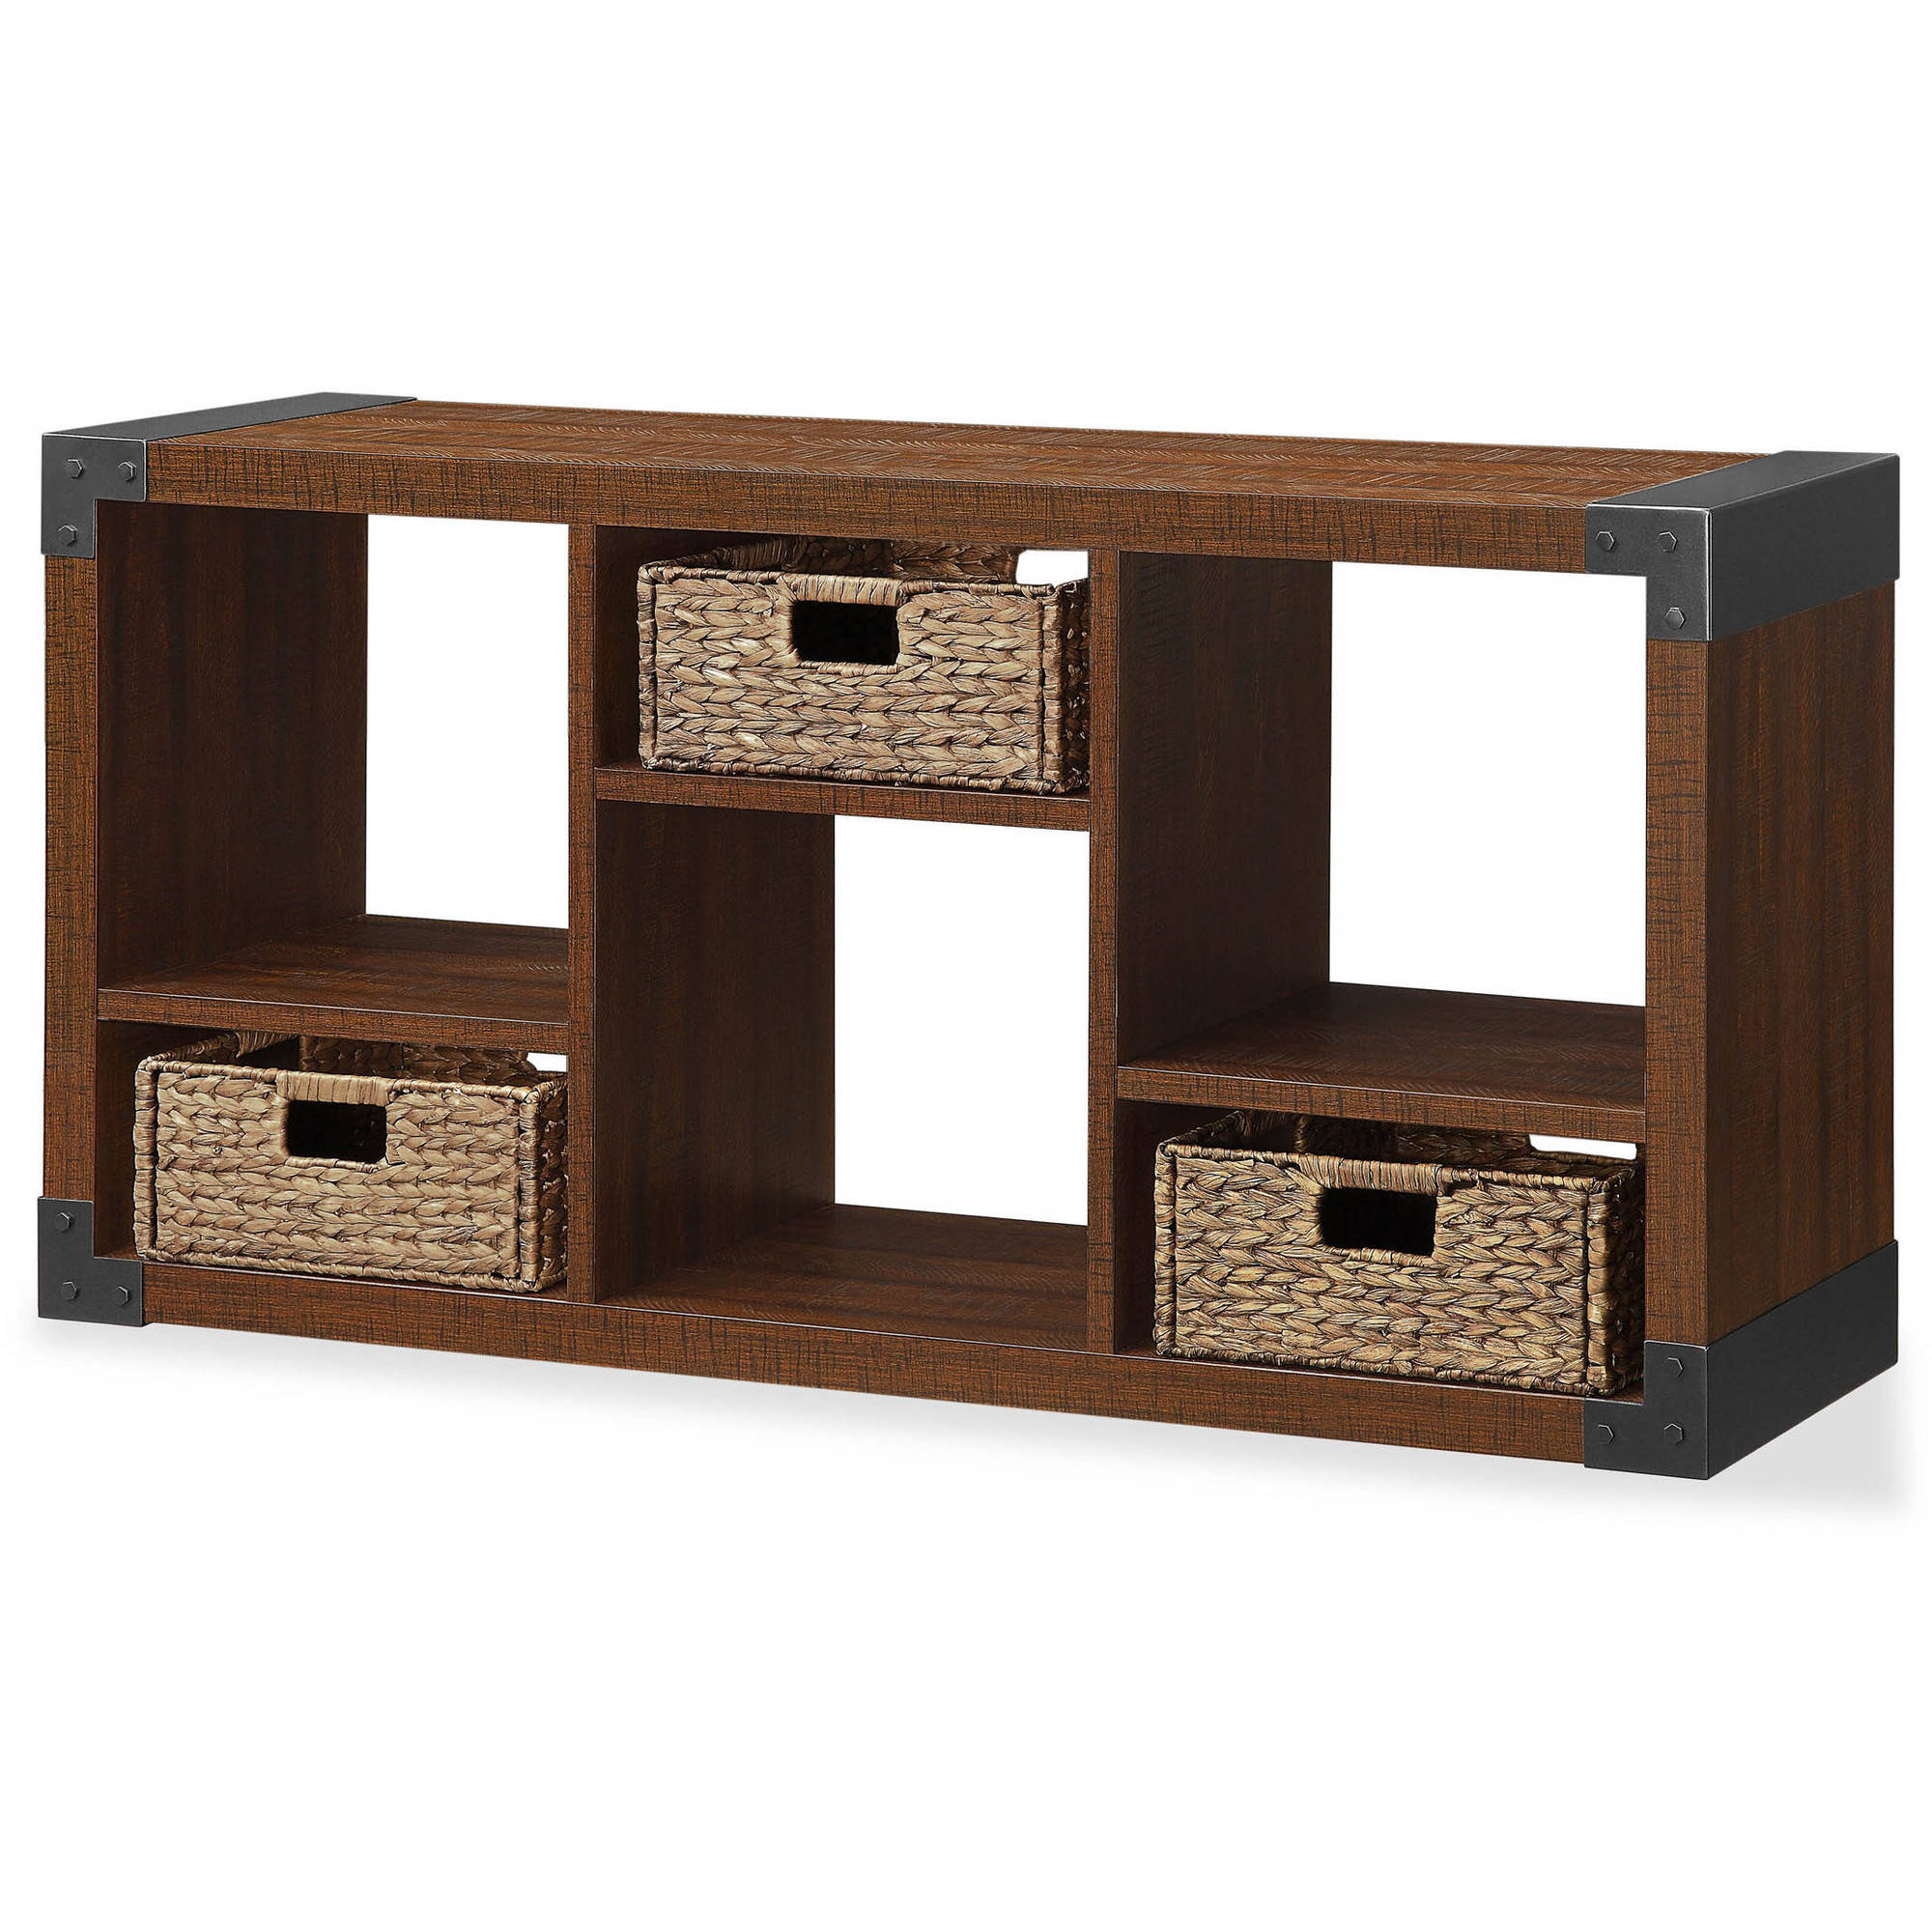 """Landon TV Stand with Cube Organizer for Flat Panel TVs up to 45"""" by Whalen Furniture"""